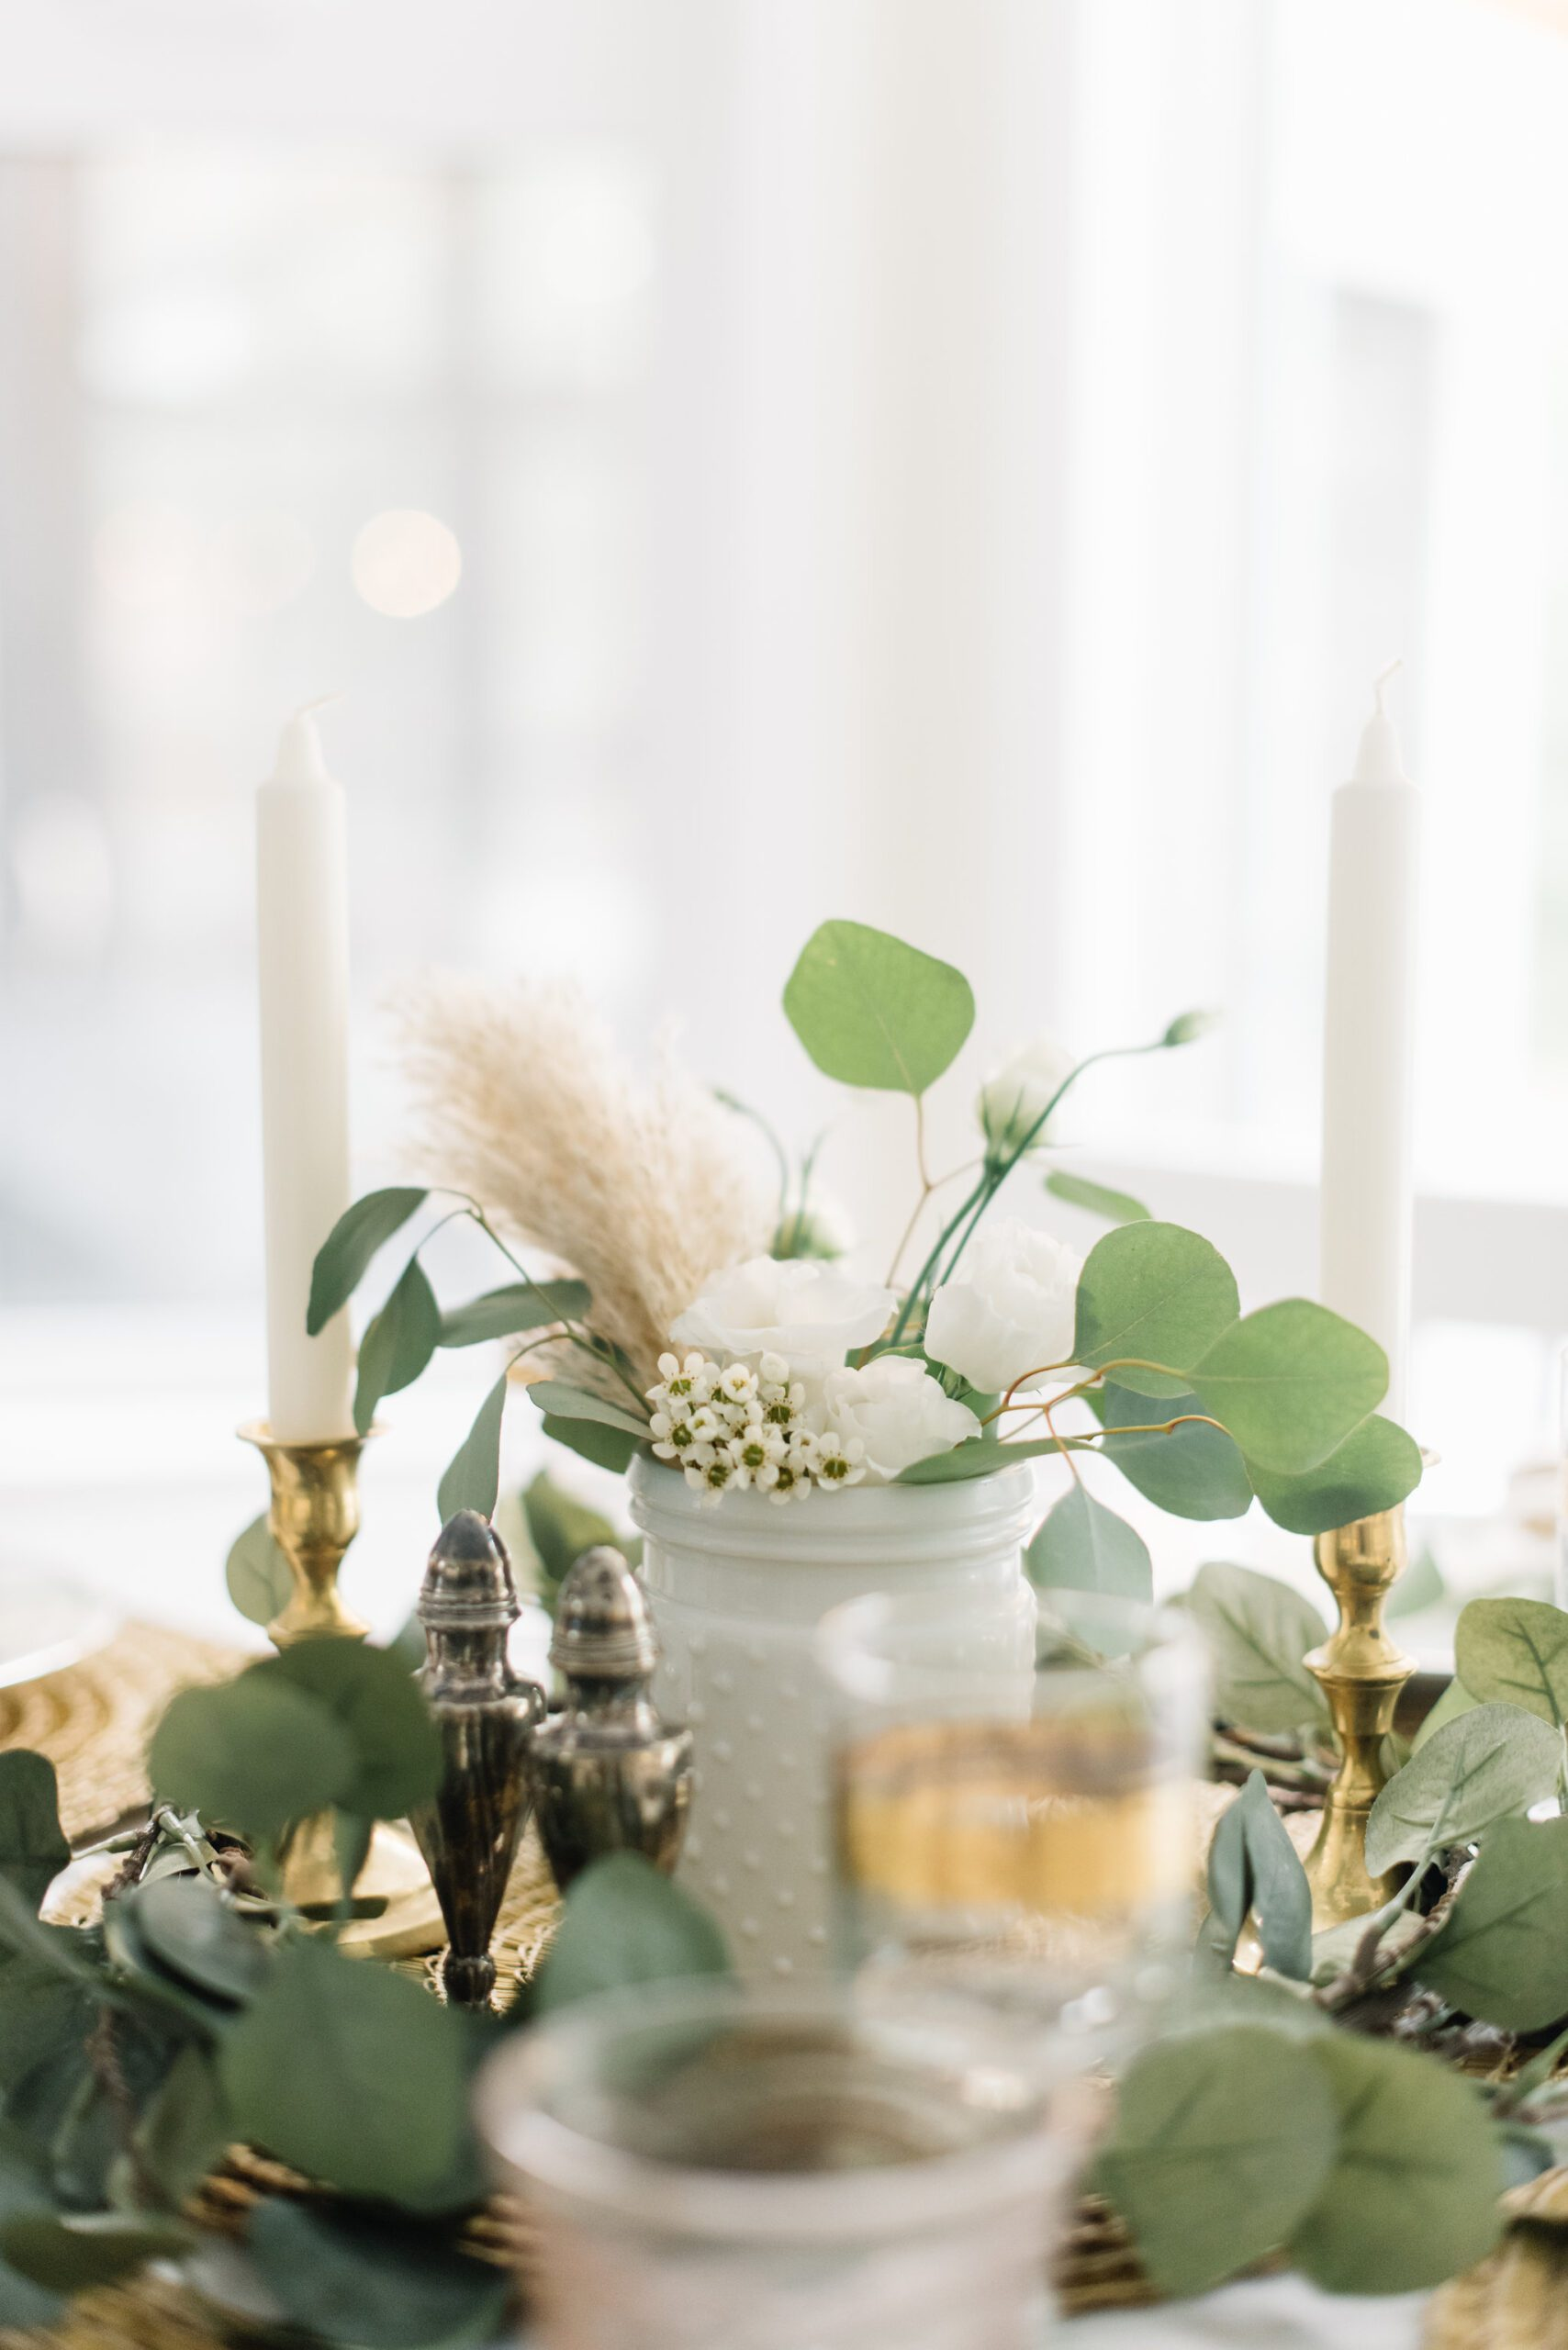 milk glass vase with dried and fresh flowers